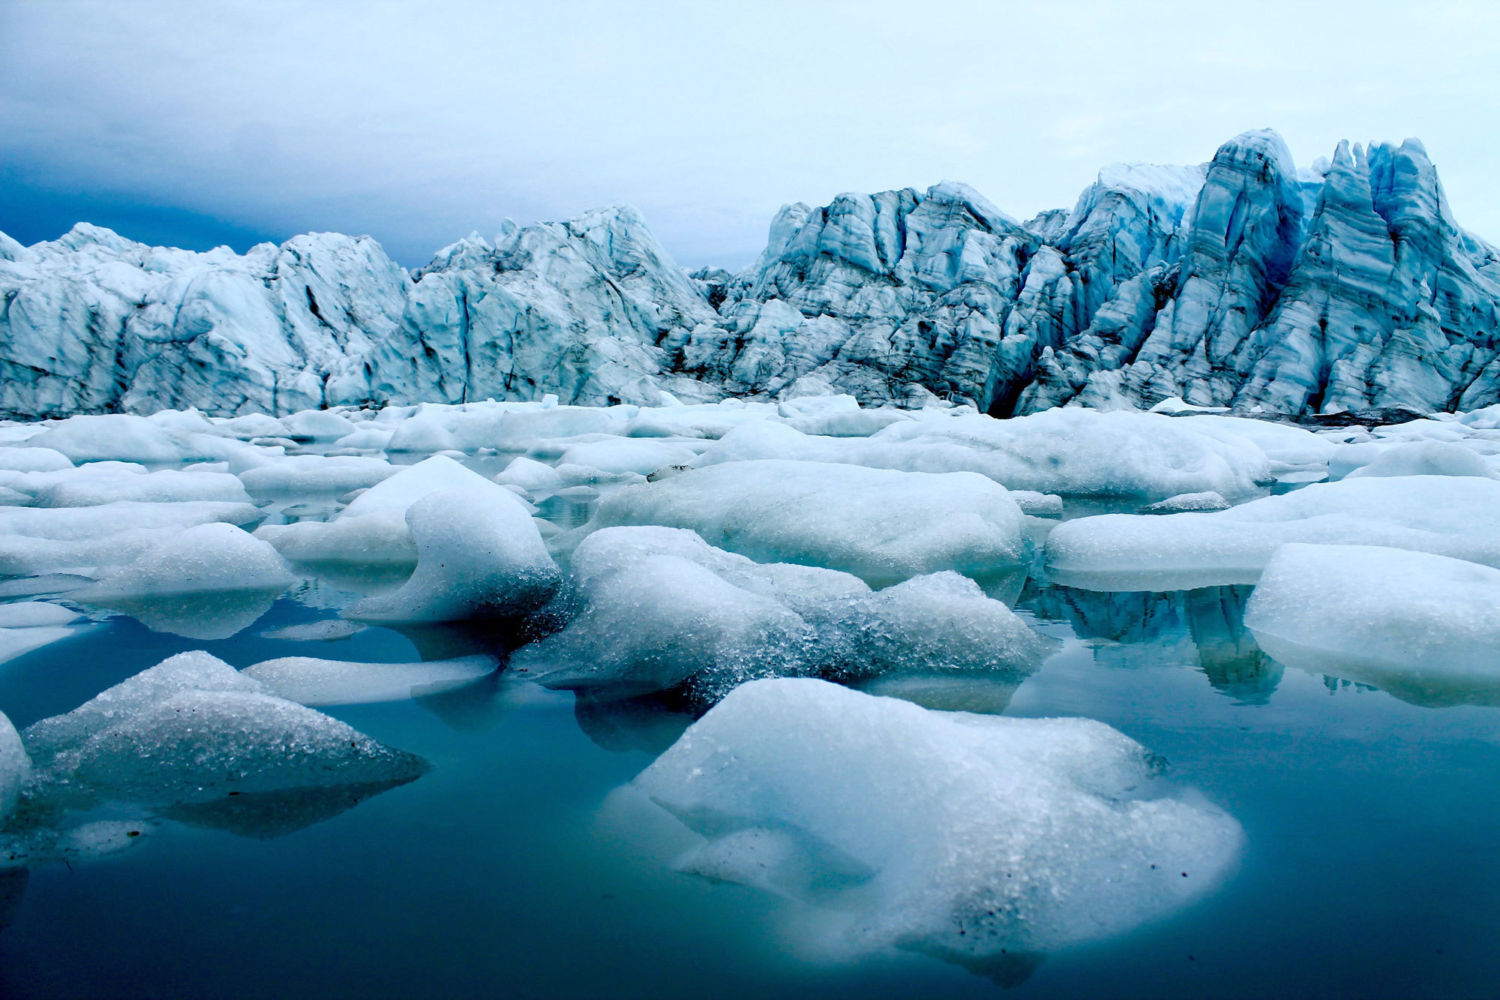 Increasing temperature threatens individual glaciers in Greenland's fjords